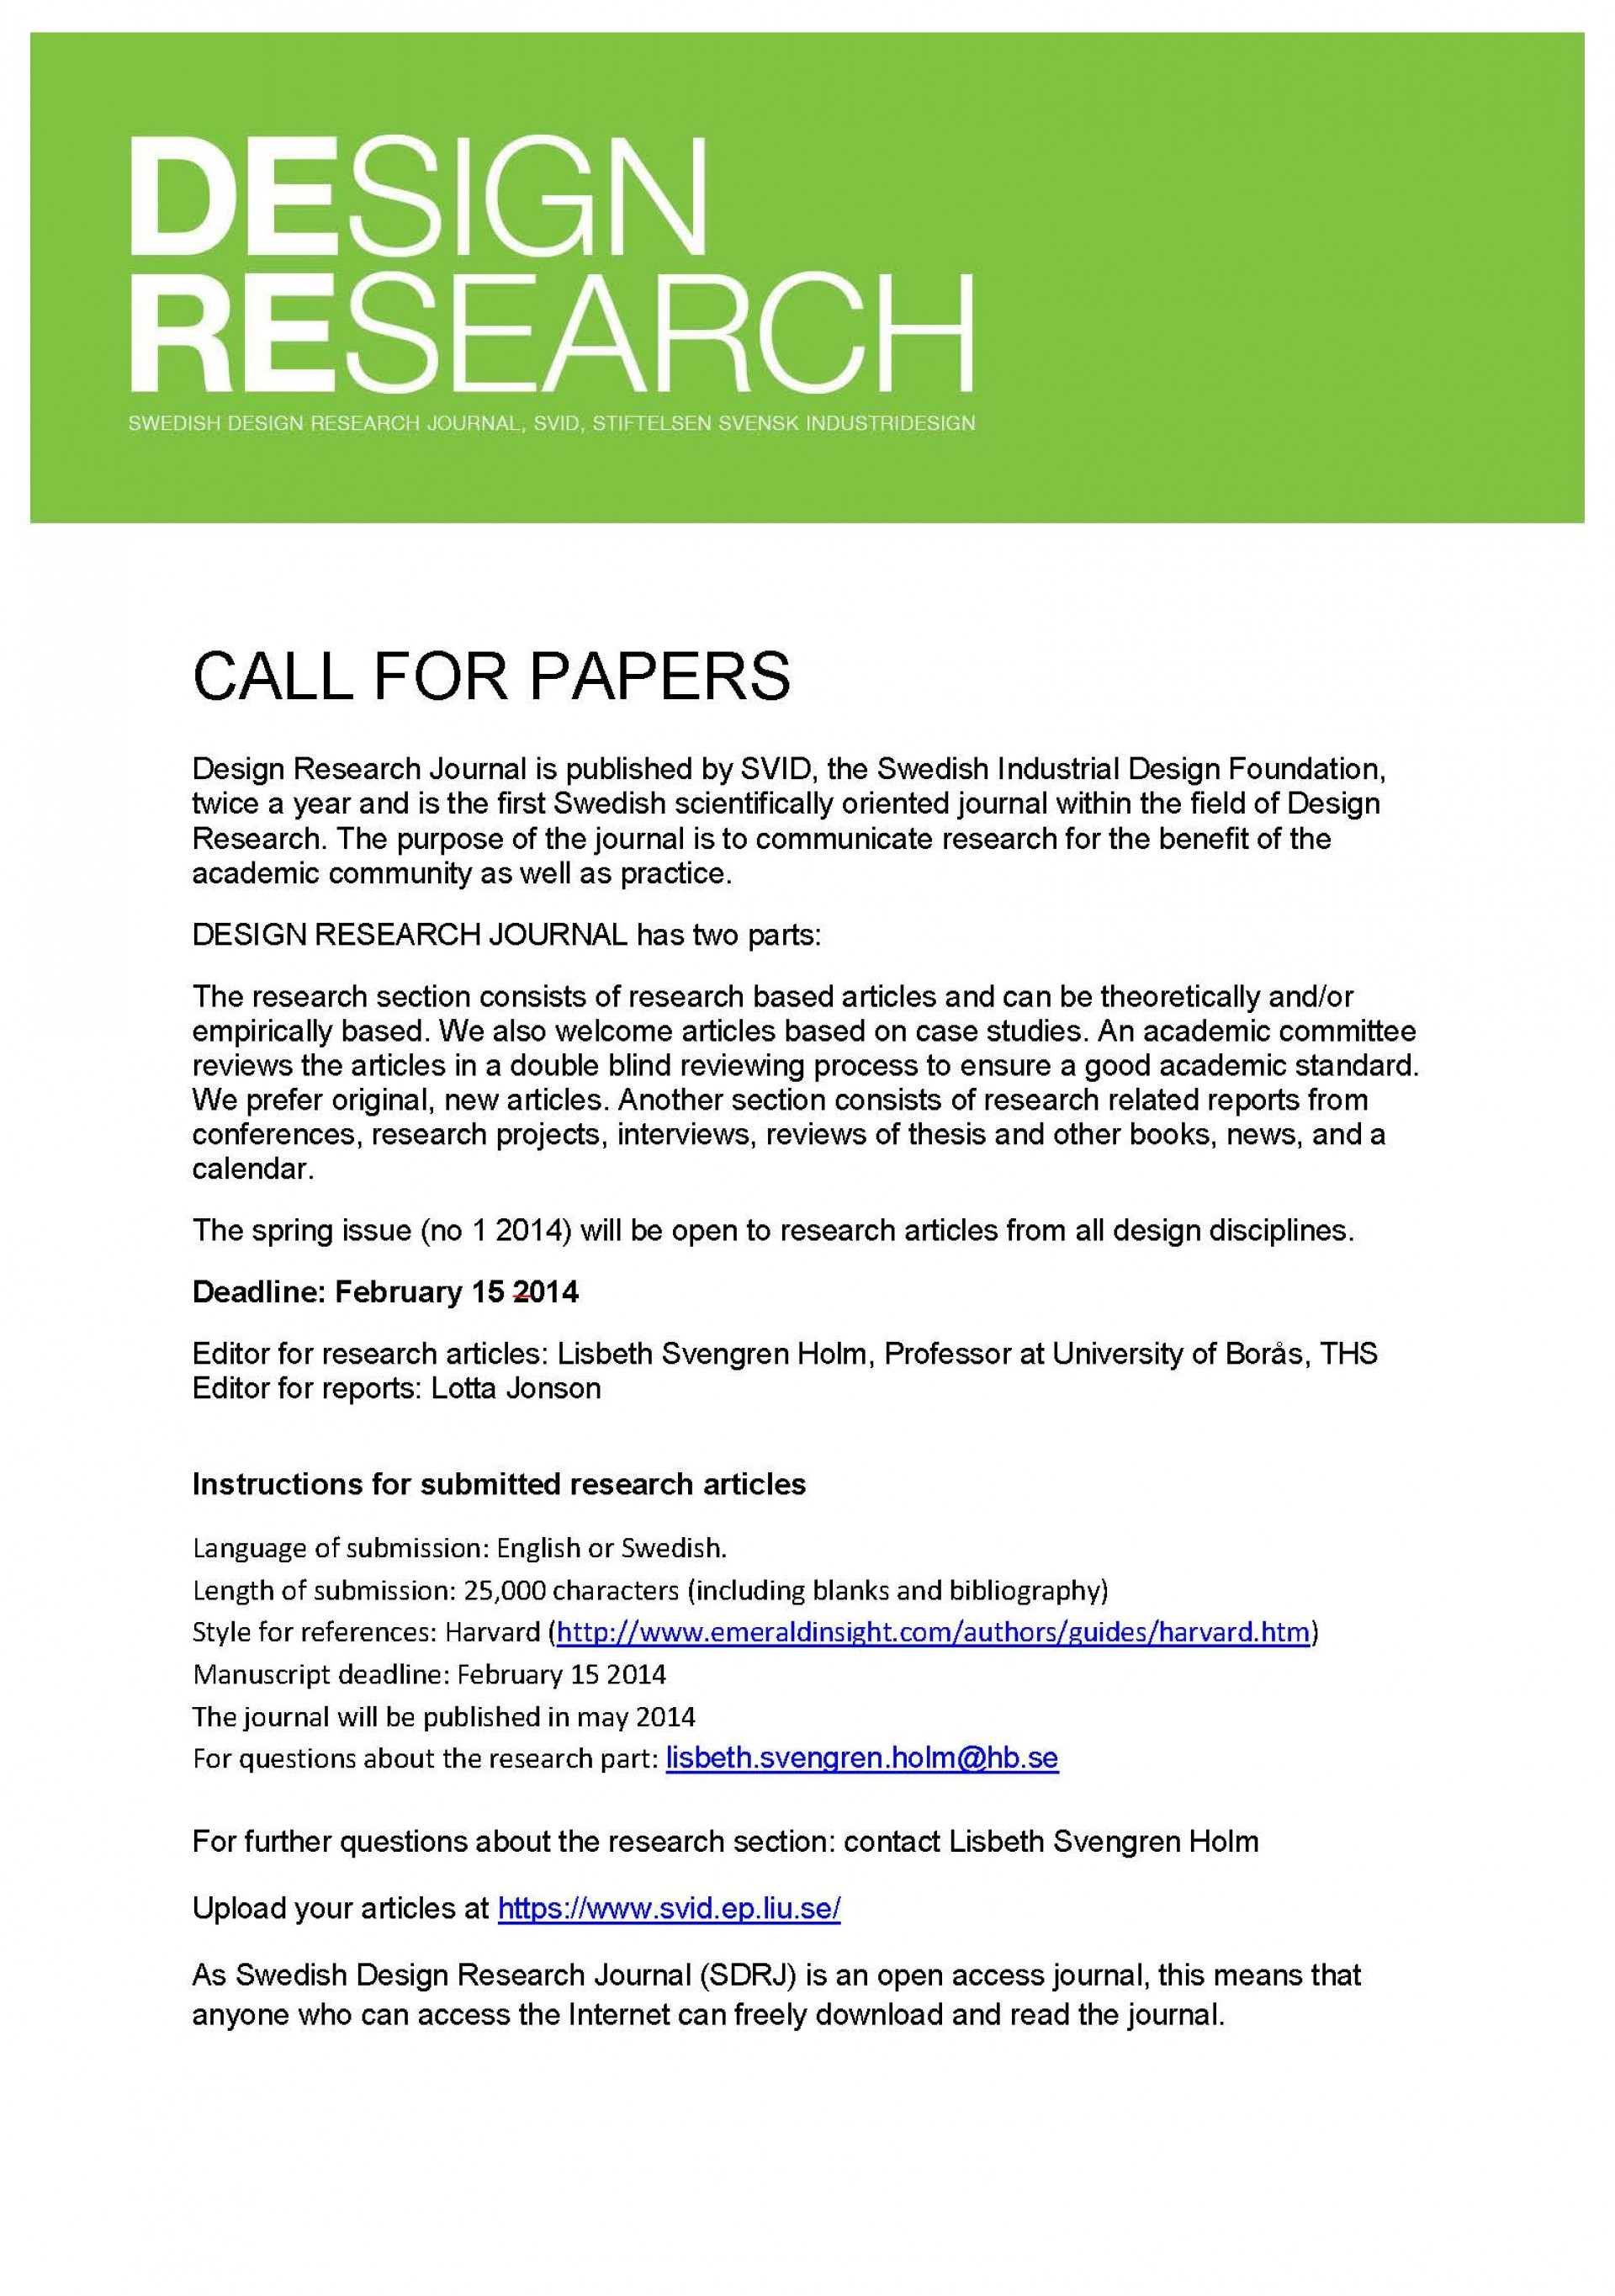 007 Call For Papers Nr 1 2014 Research Paper Stupendous Generator Thesis Download 1920